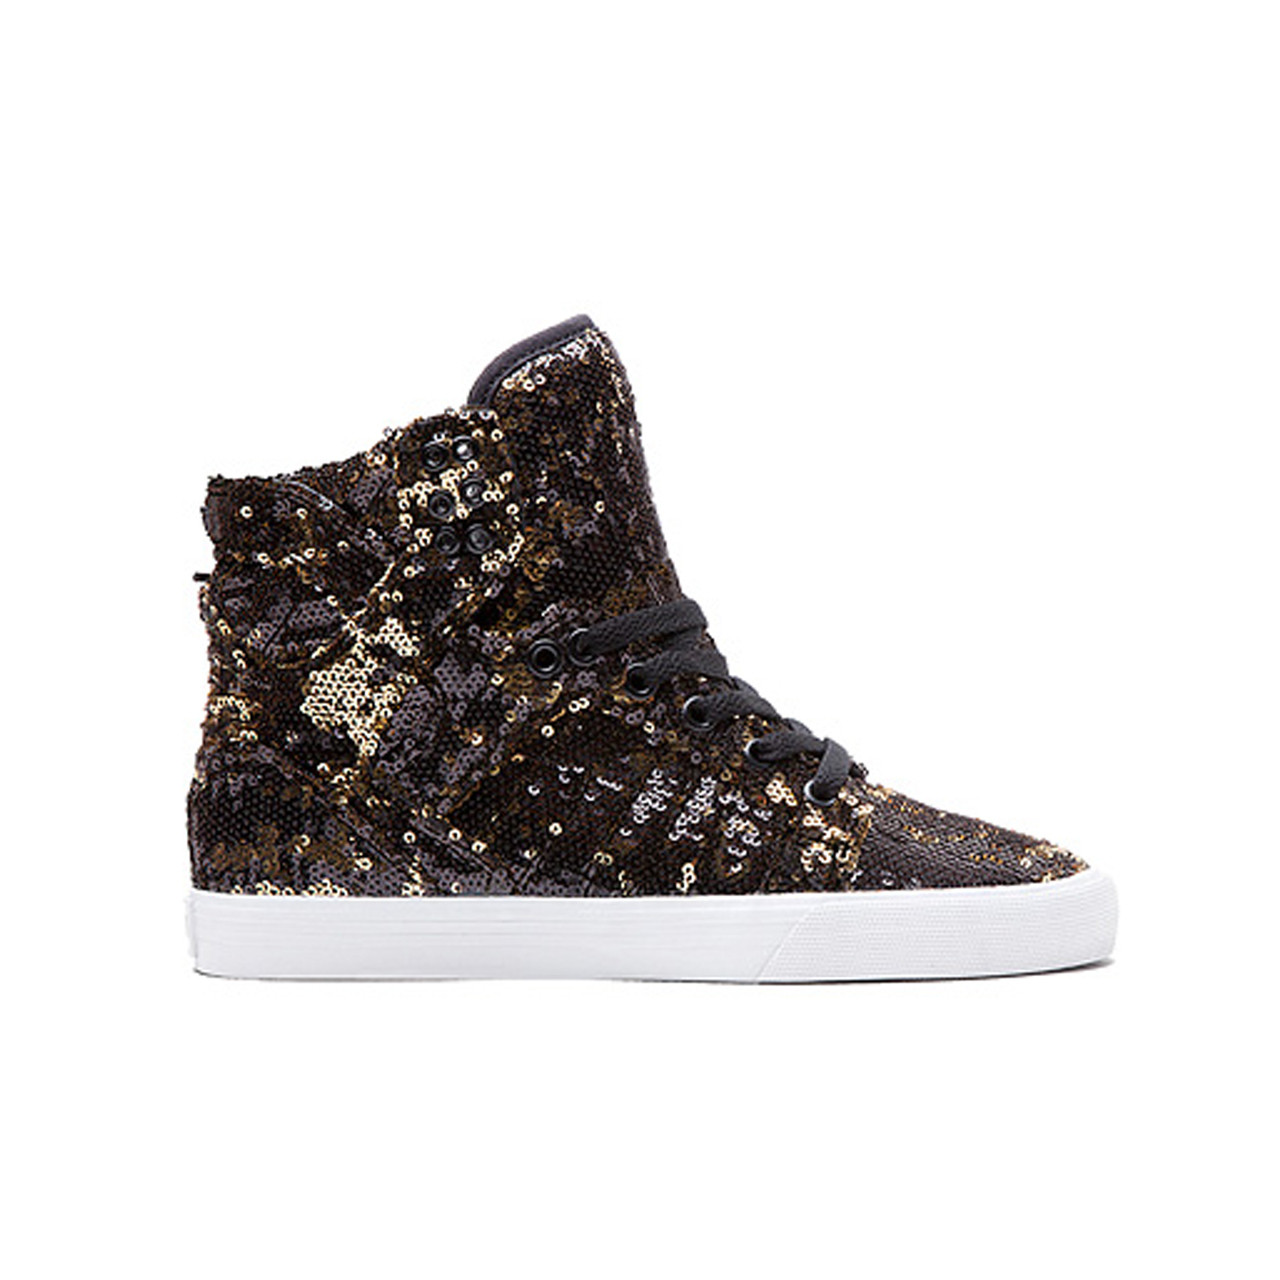 8474ef3354a ... Women's Supra Shoes Skytop Black/Gold/White. Image 1. Image 2. See 1  more picture